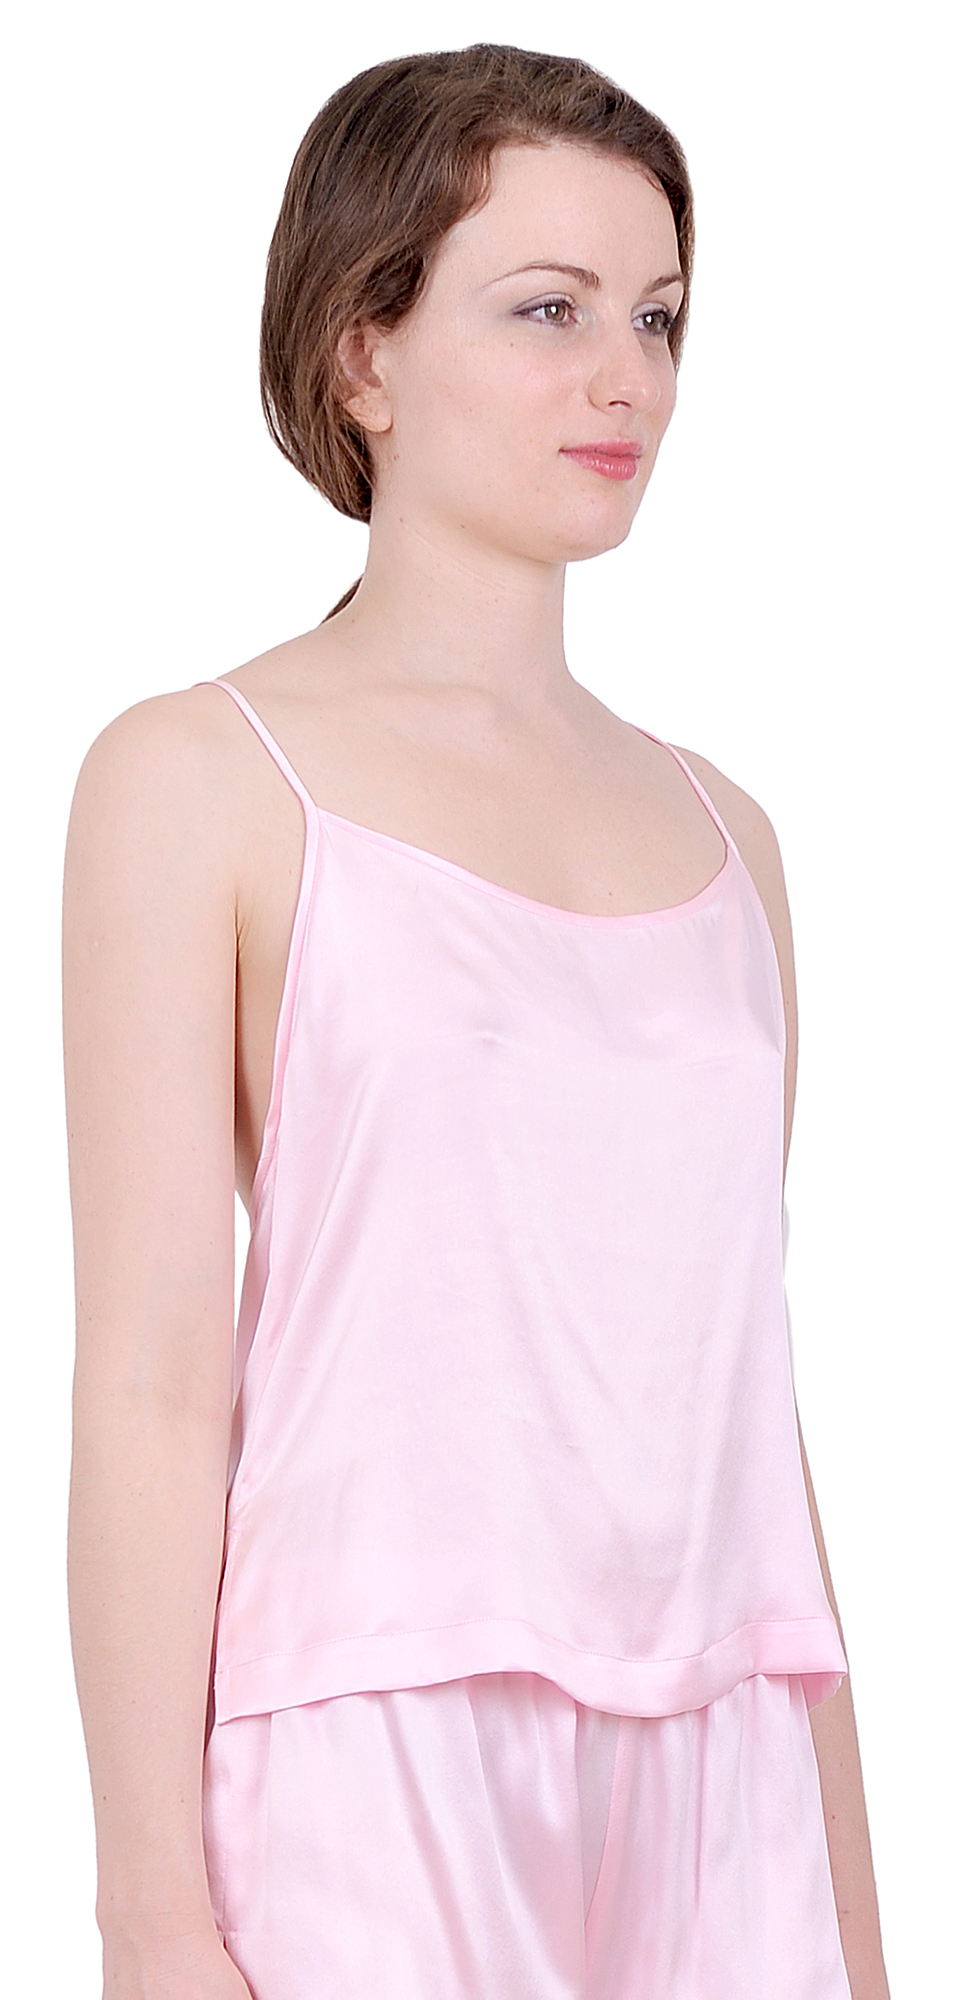 Shop Women's Tanks and Camis at manakamanamobilecenter.tk and discover the essential collection of stretch tanks, ribbed tanks, scoopneck tanks, silk camisoles, and more. Free shipping and returns. Theory Complimentary shipping and returns on all U.S. orders.